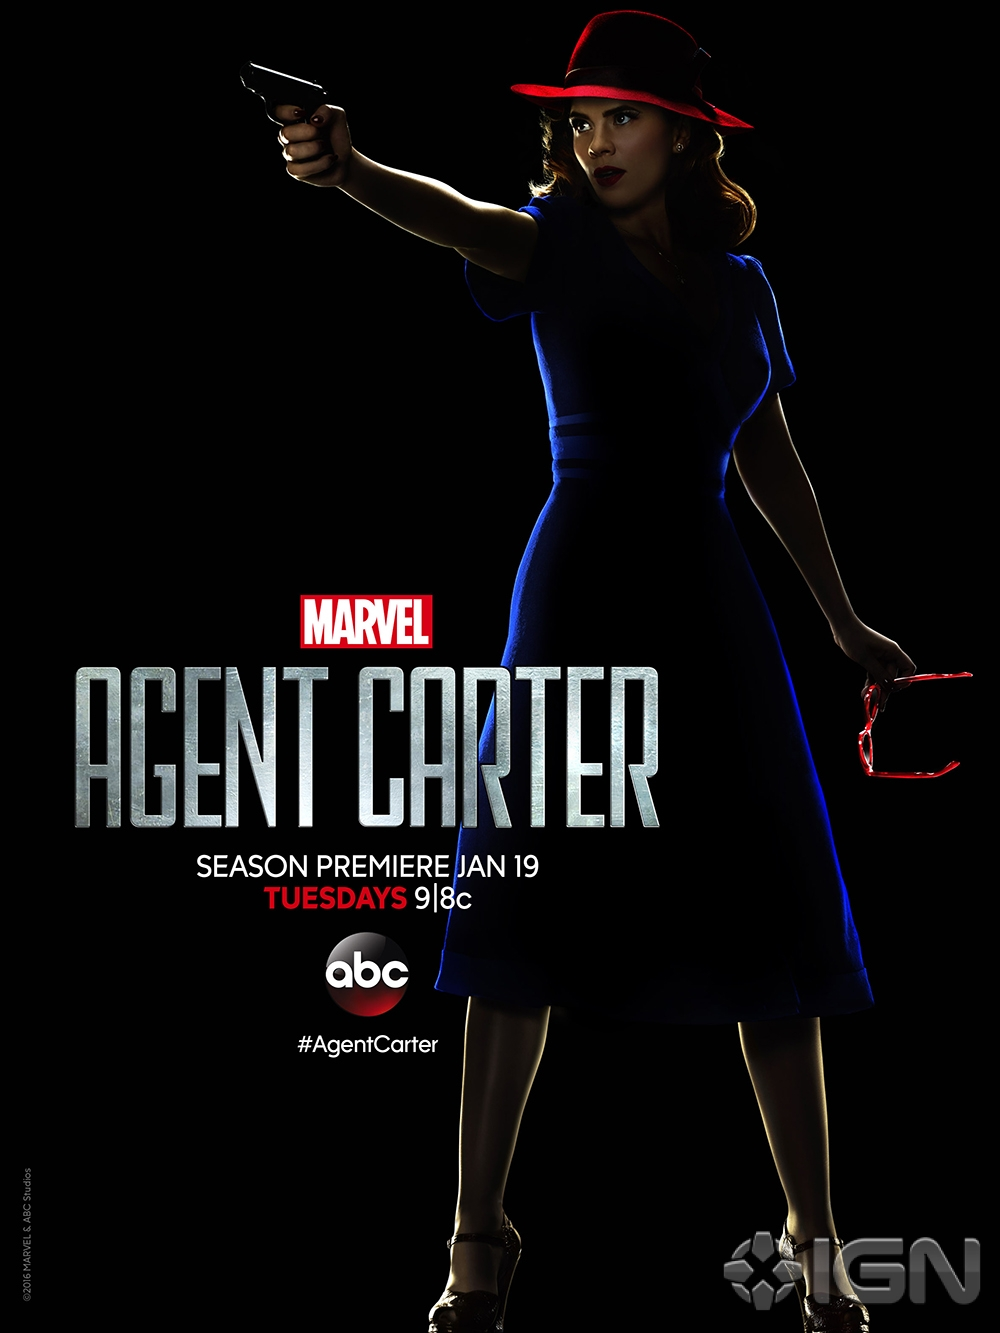 Latest Promo For Agent Carter Sends Marvel's Best Operative To Hollywood